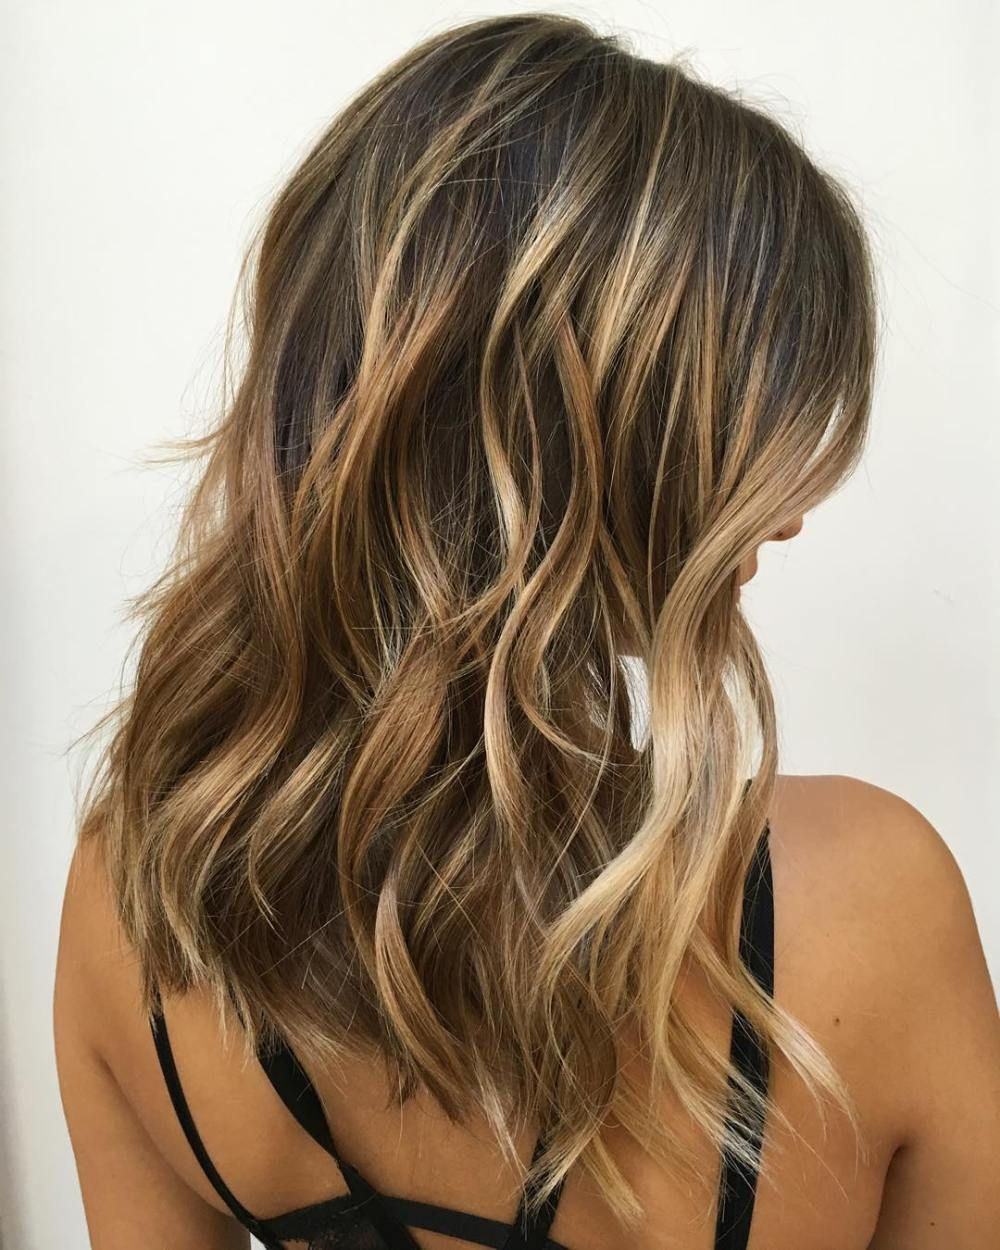 Balayage Hair Color Ideas with Blonde Brown and Caramel Highlights